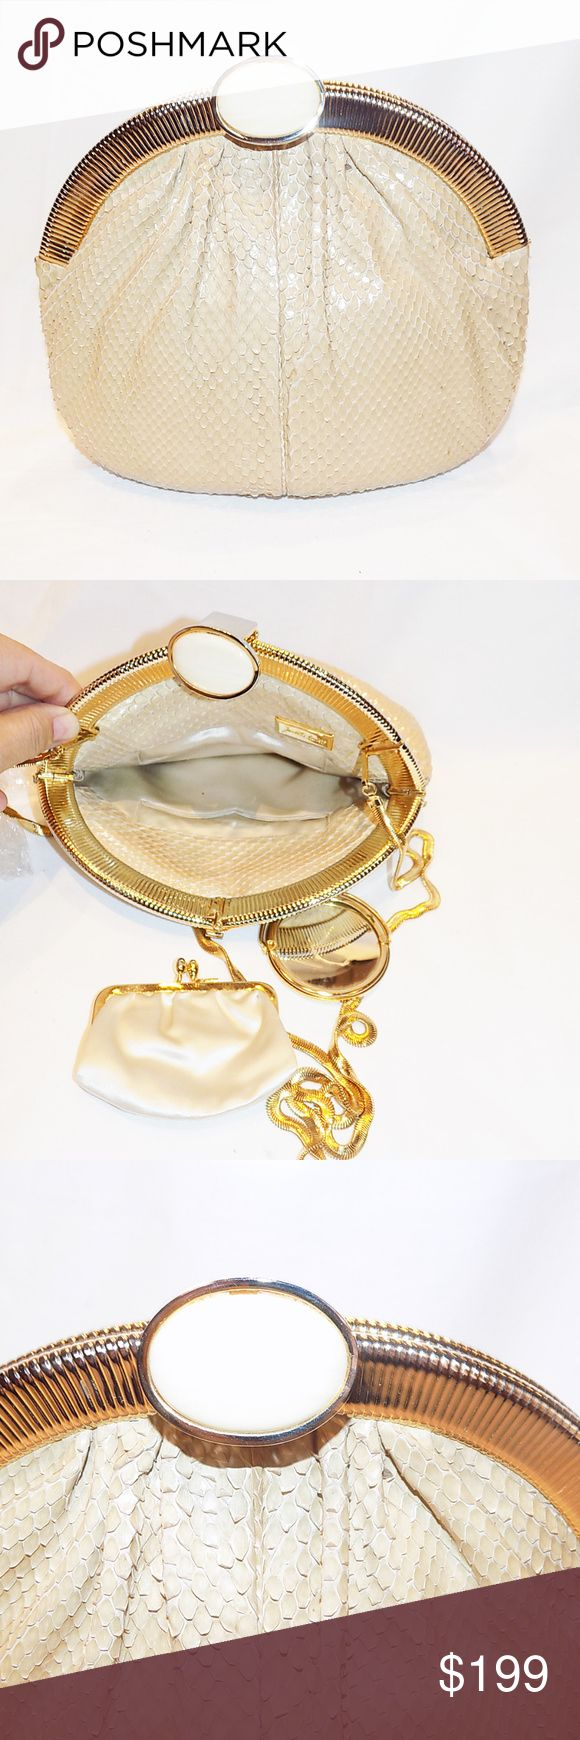 "Judith Leiber Beige Snake Skin Frame Bag Beige Snake Skin Frame Handbag or Clutch with large oval  Stone Clasp!  Easily converts to a clutch.  Bag is neutral color and so perfect for any dress and any occasion. Excellent size to fit your phone and all you need for the evening. Mirror and coin purse included.  Bag measures 8.5"" by 7"" chain drop 22"" Pristine condition Judith Leiber Bags Shoulder Bags"